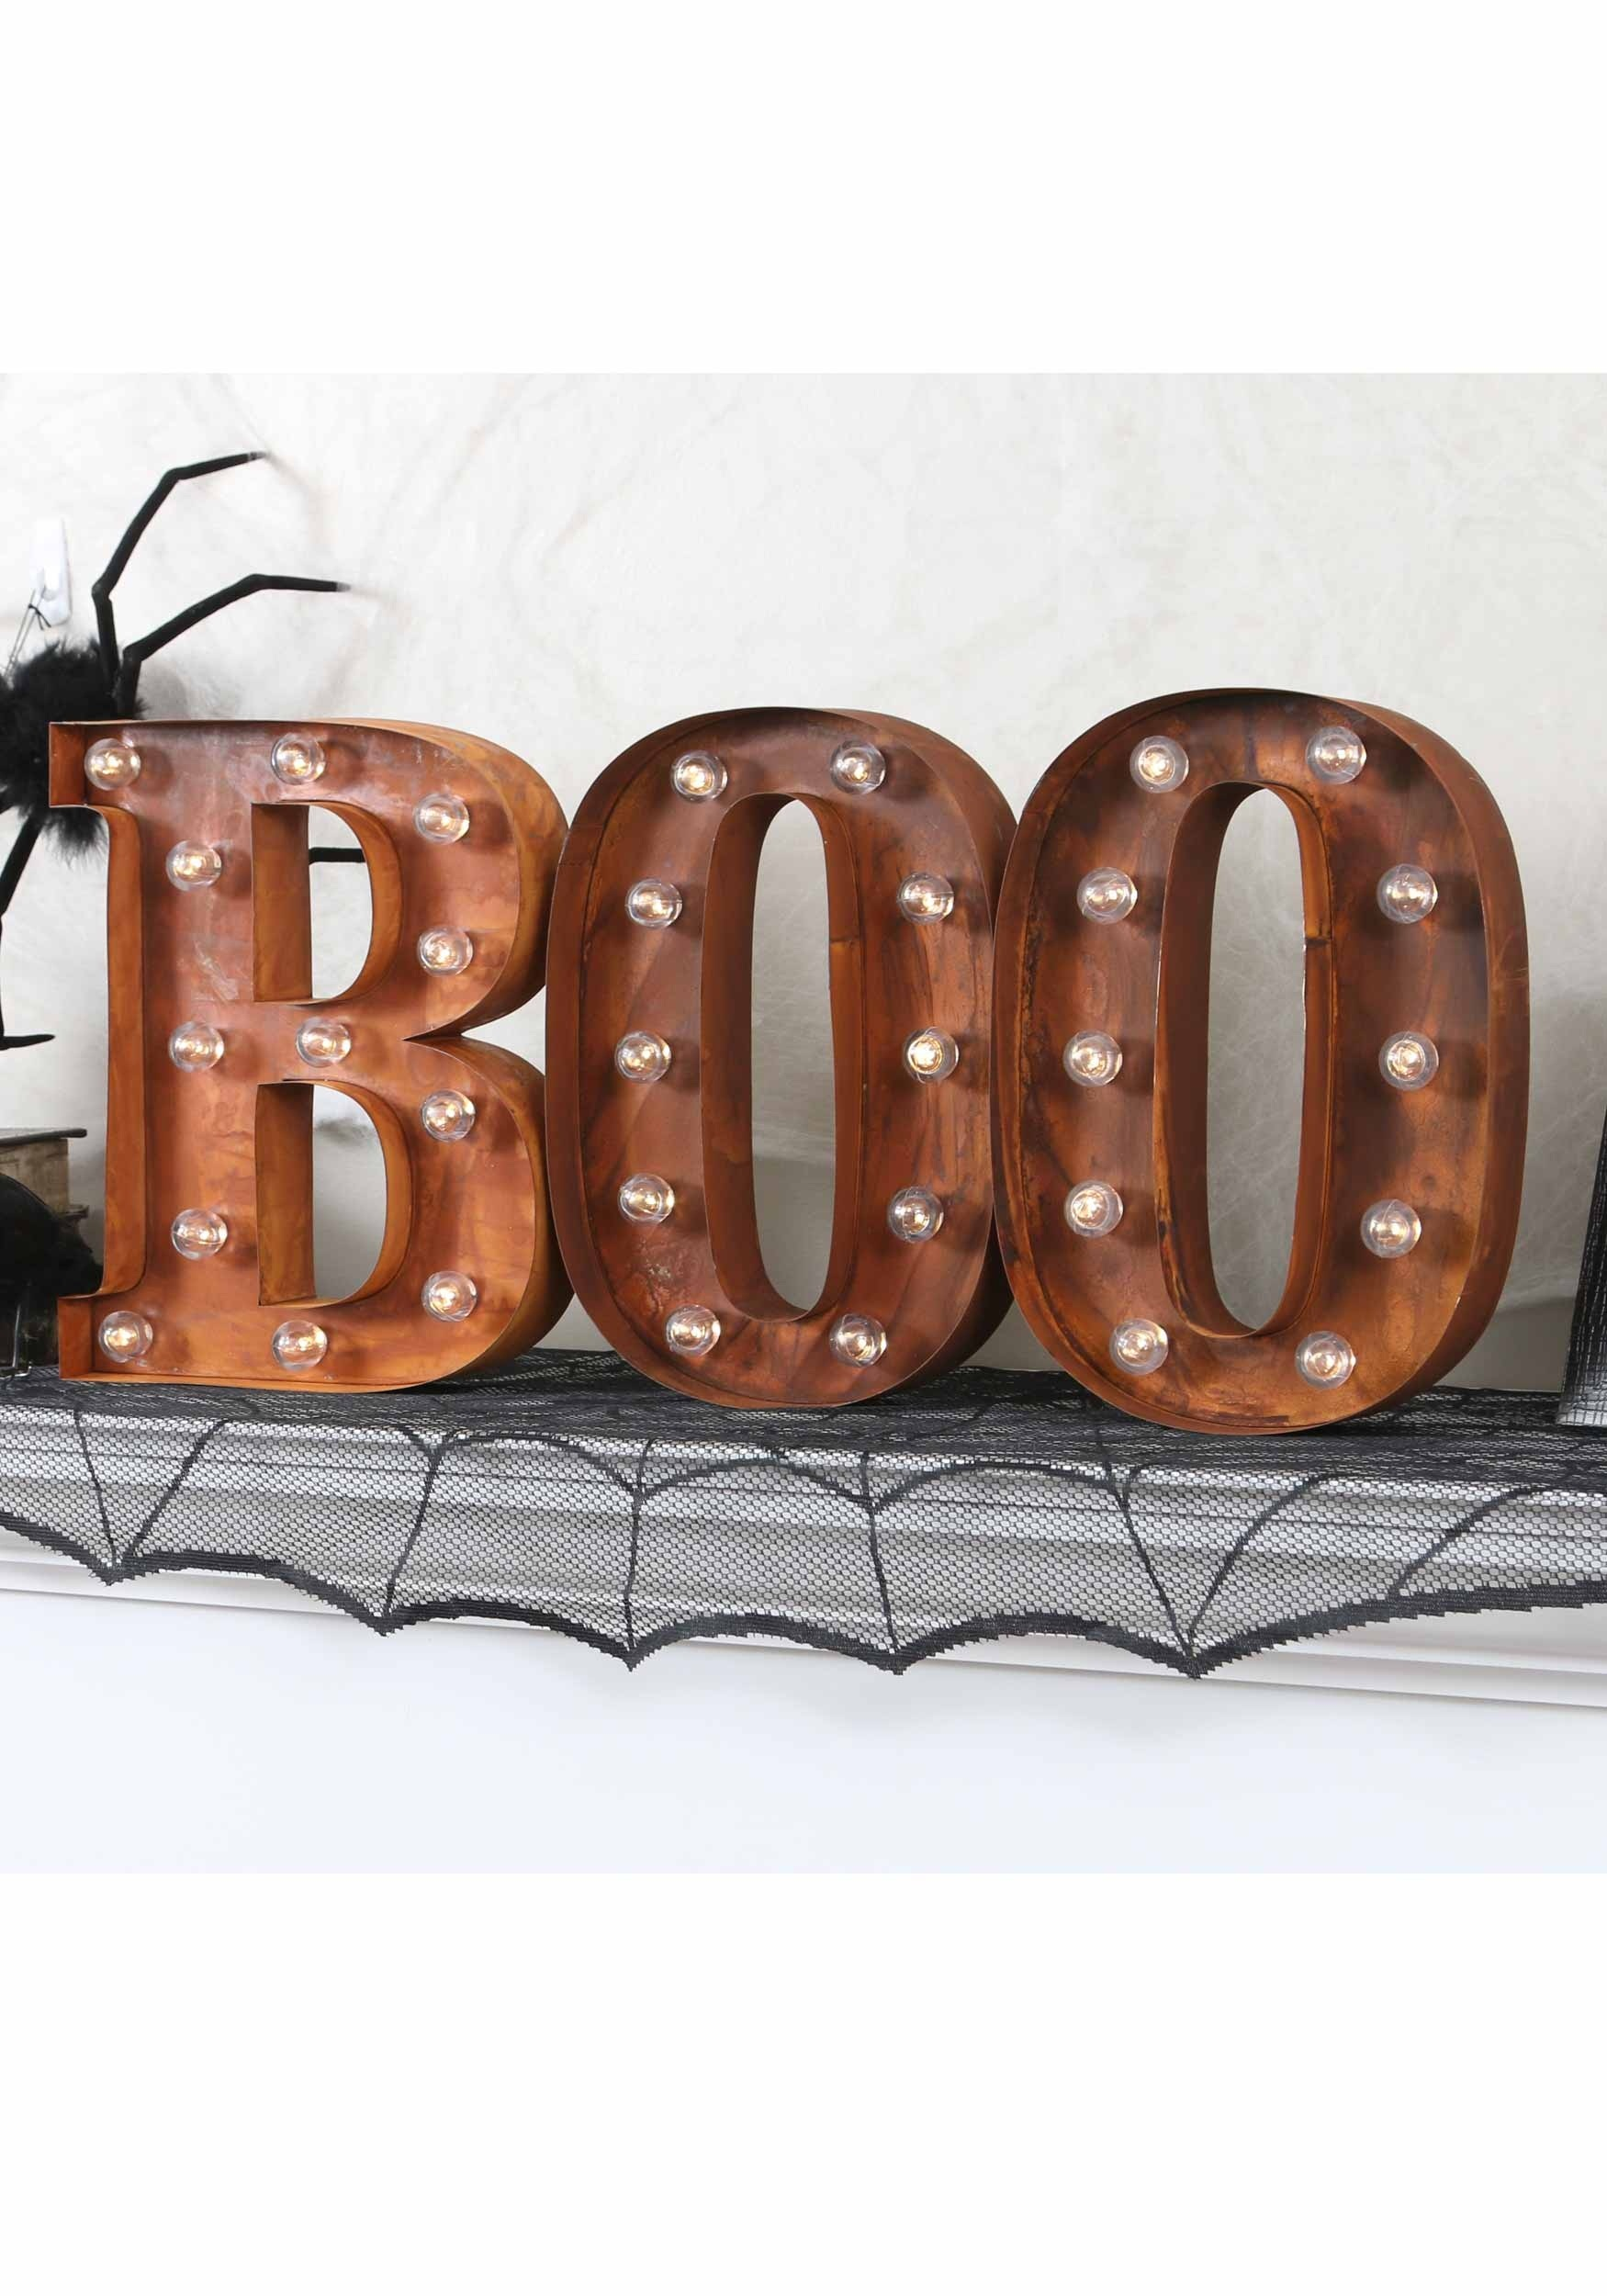 lighted letter signs lighted boo sign 23445 | lighted boo sign letter b